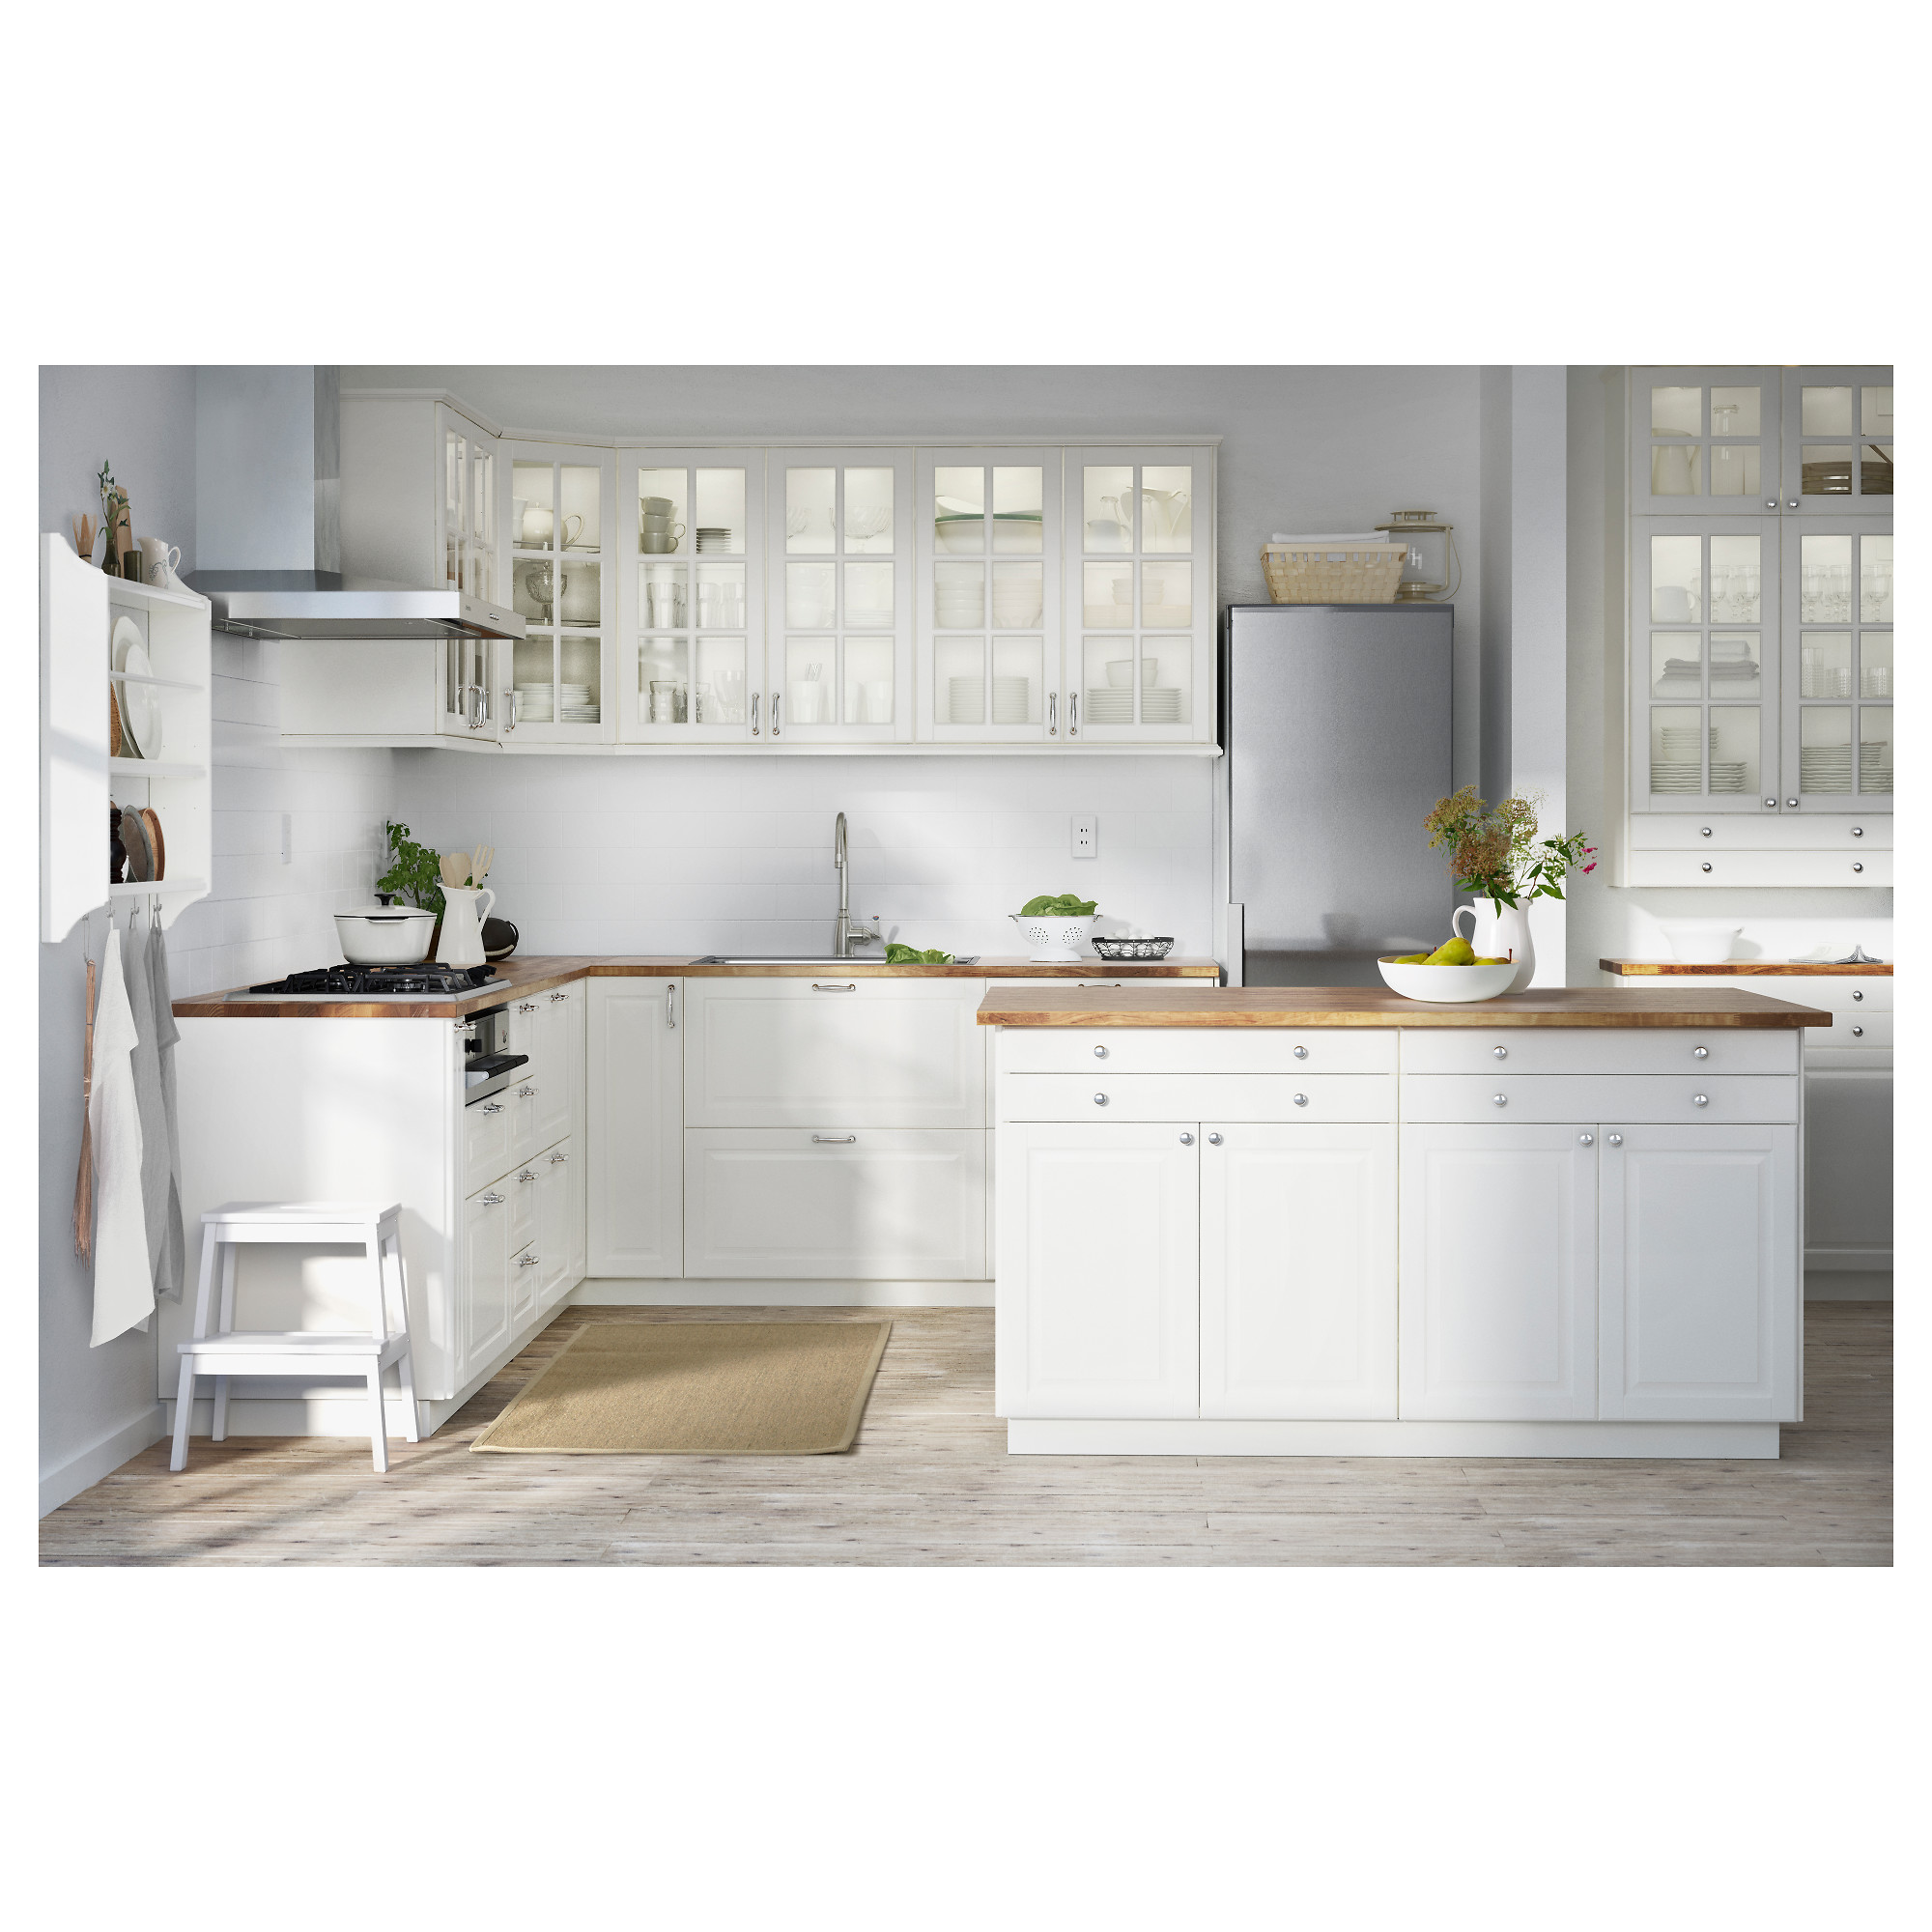 cuisine method ikea cheap ikea offers for kitchen from ikea until st july ikea offers u. Black Bedroom Furniture Sets. Home Design Ideas